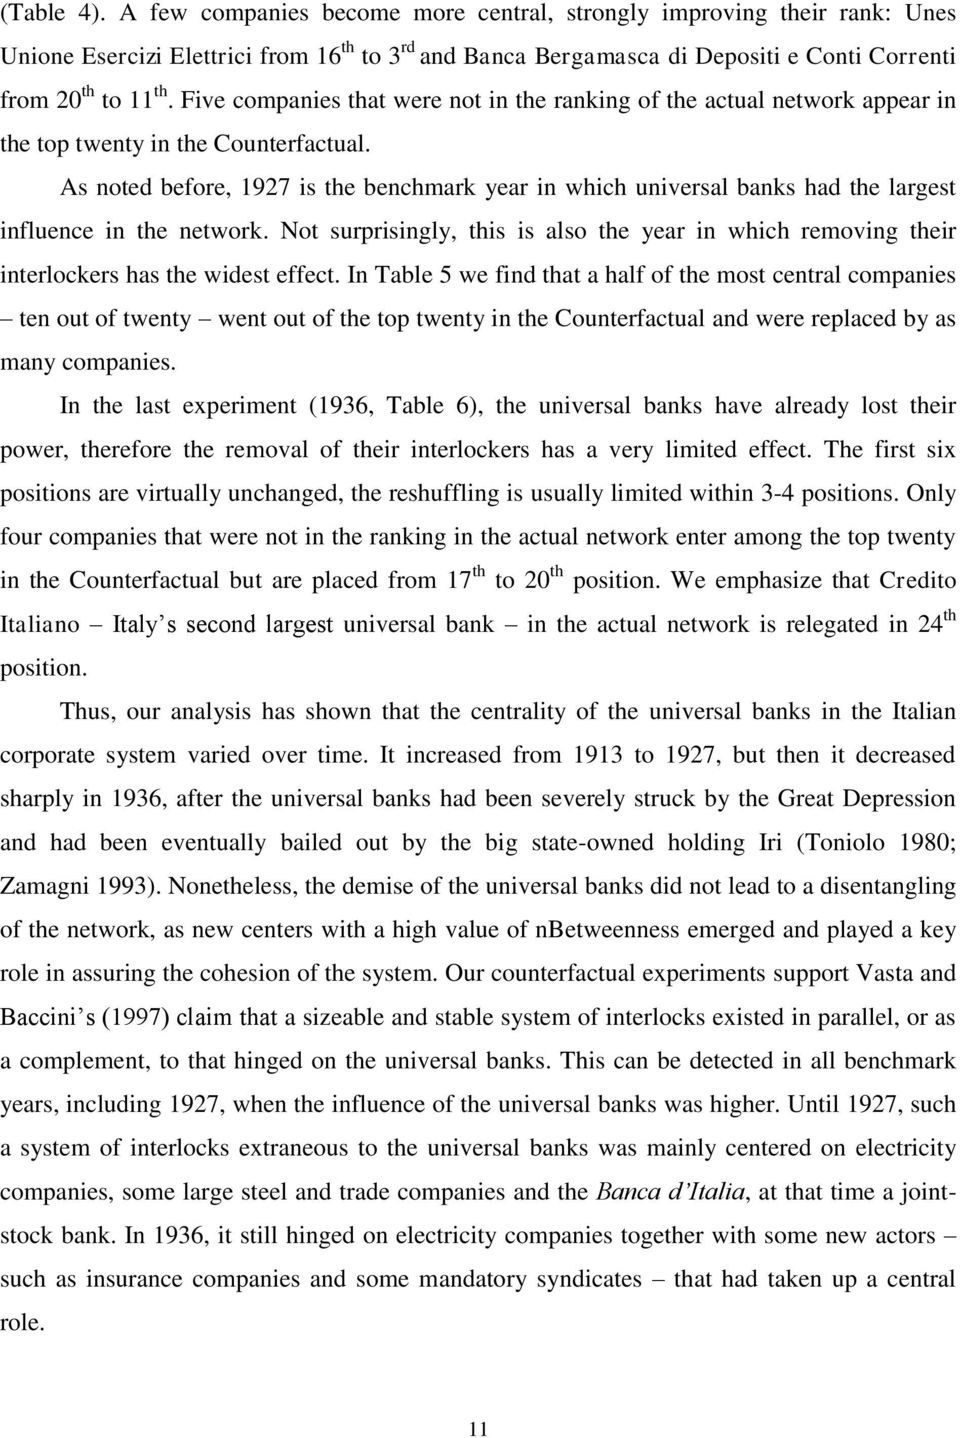 As noted before, 1927 is the benchmark year in which universal banks had the largest influence in the network.